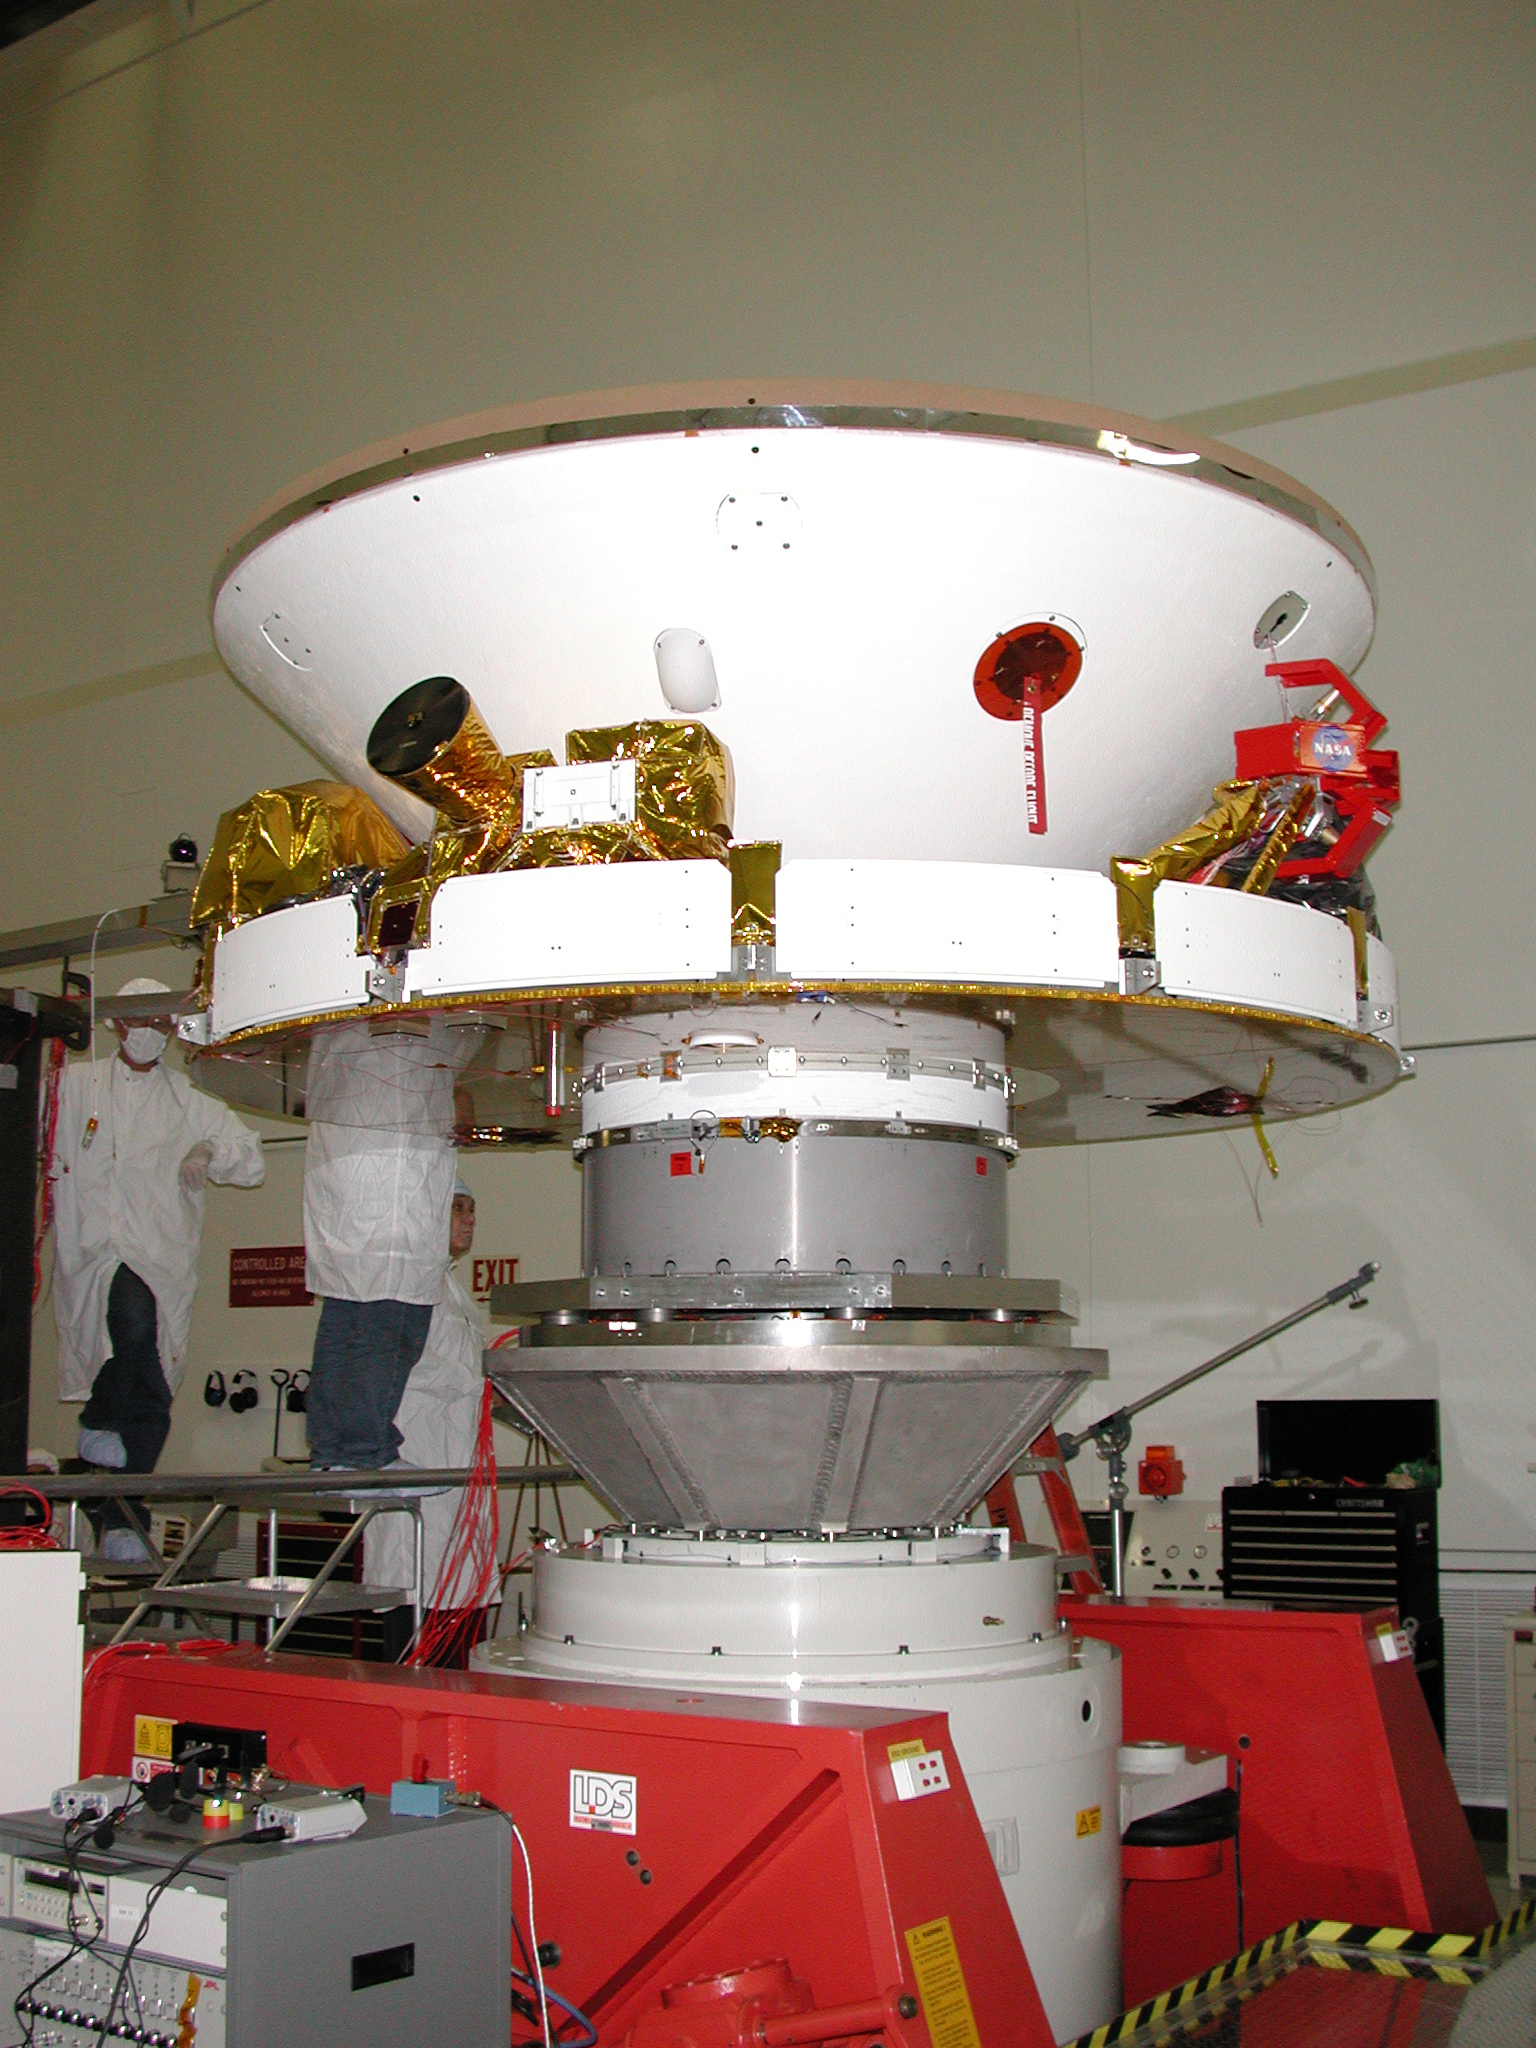 In this photo, engineers are preparing the rover for vibration testing to ensure that it can undergo the rigors of launch and entry into the martian atmosphere. The rovers are scheduled to launch next spring and will arrive at Mars in January 2004.